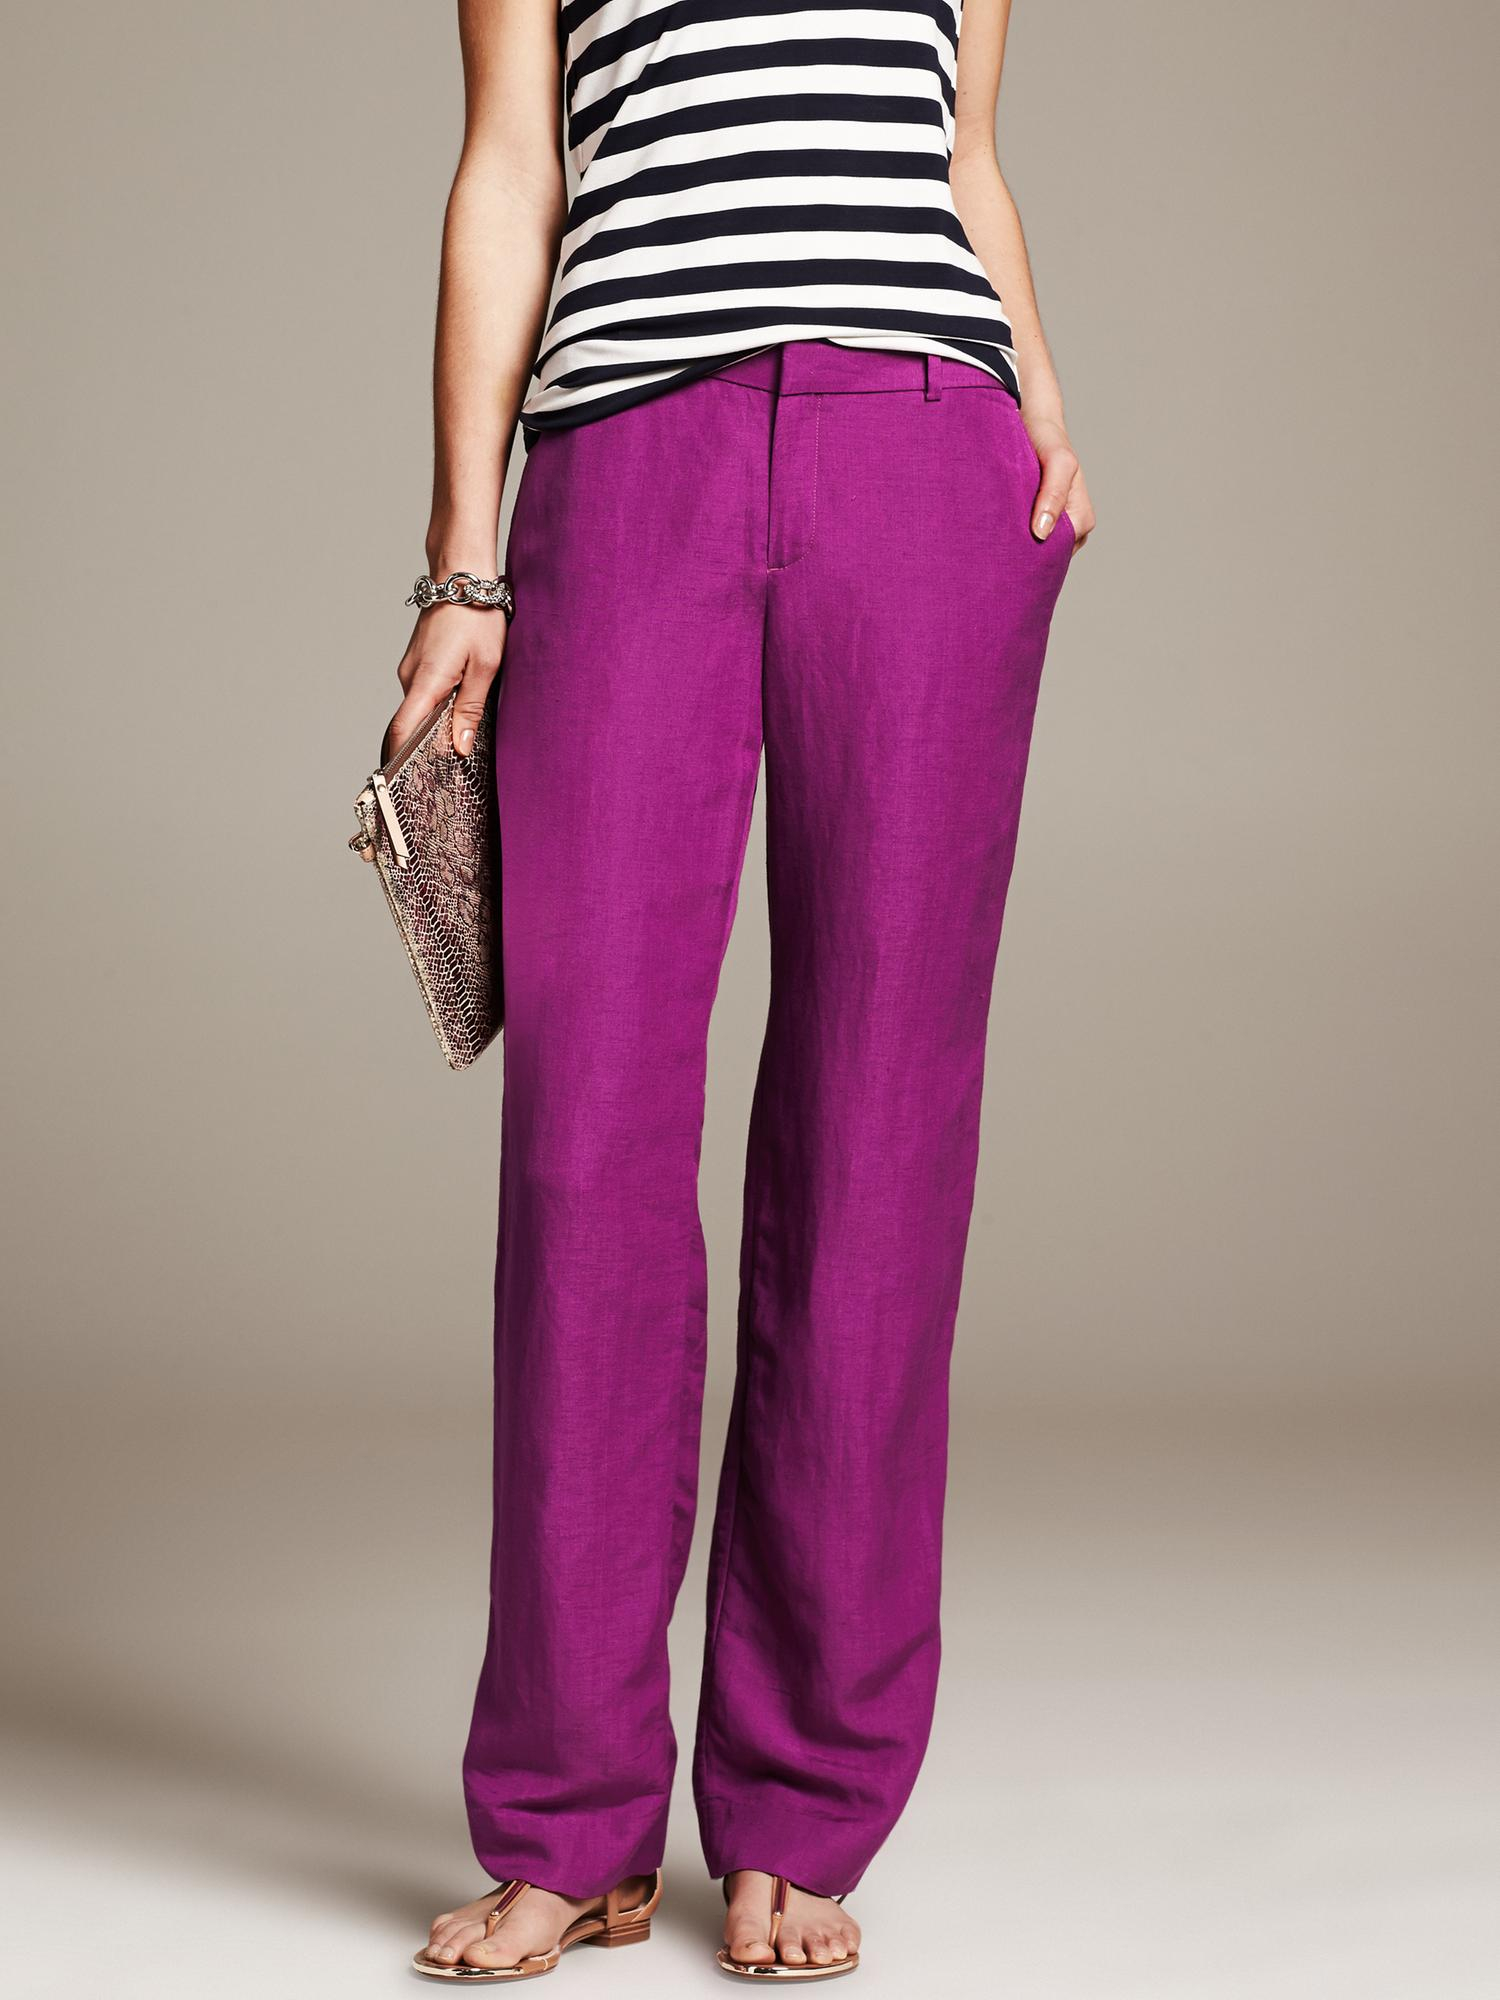 Banana Republic Linen Blend Wide Leg Pant Berry Paradise